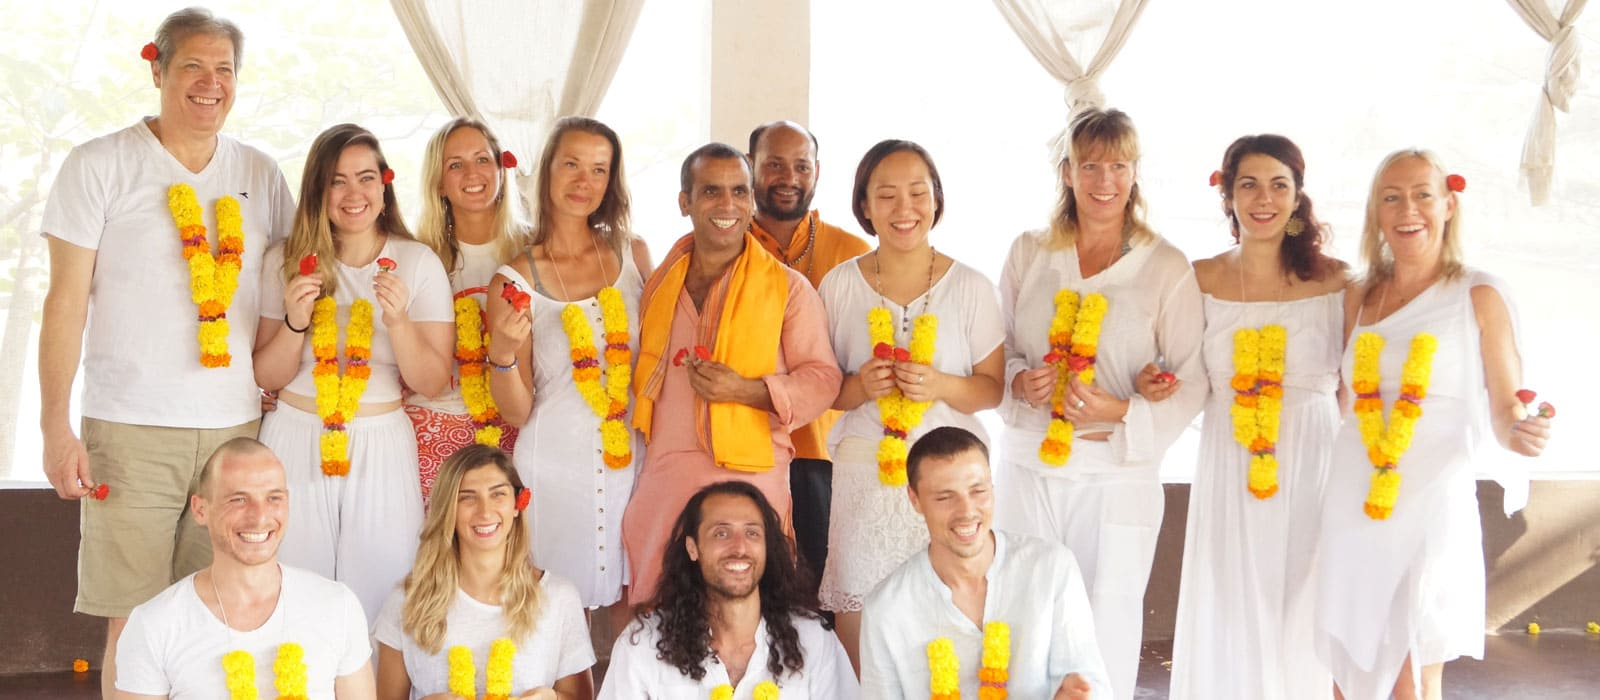 200 hrs ashtanga yoga teacher training at vishuddhi yoga school in goa, india21525947111.jpg